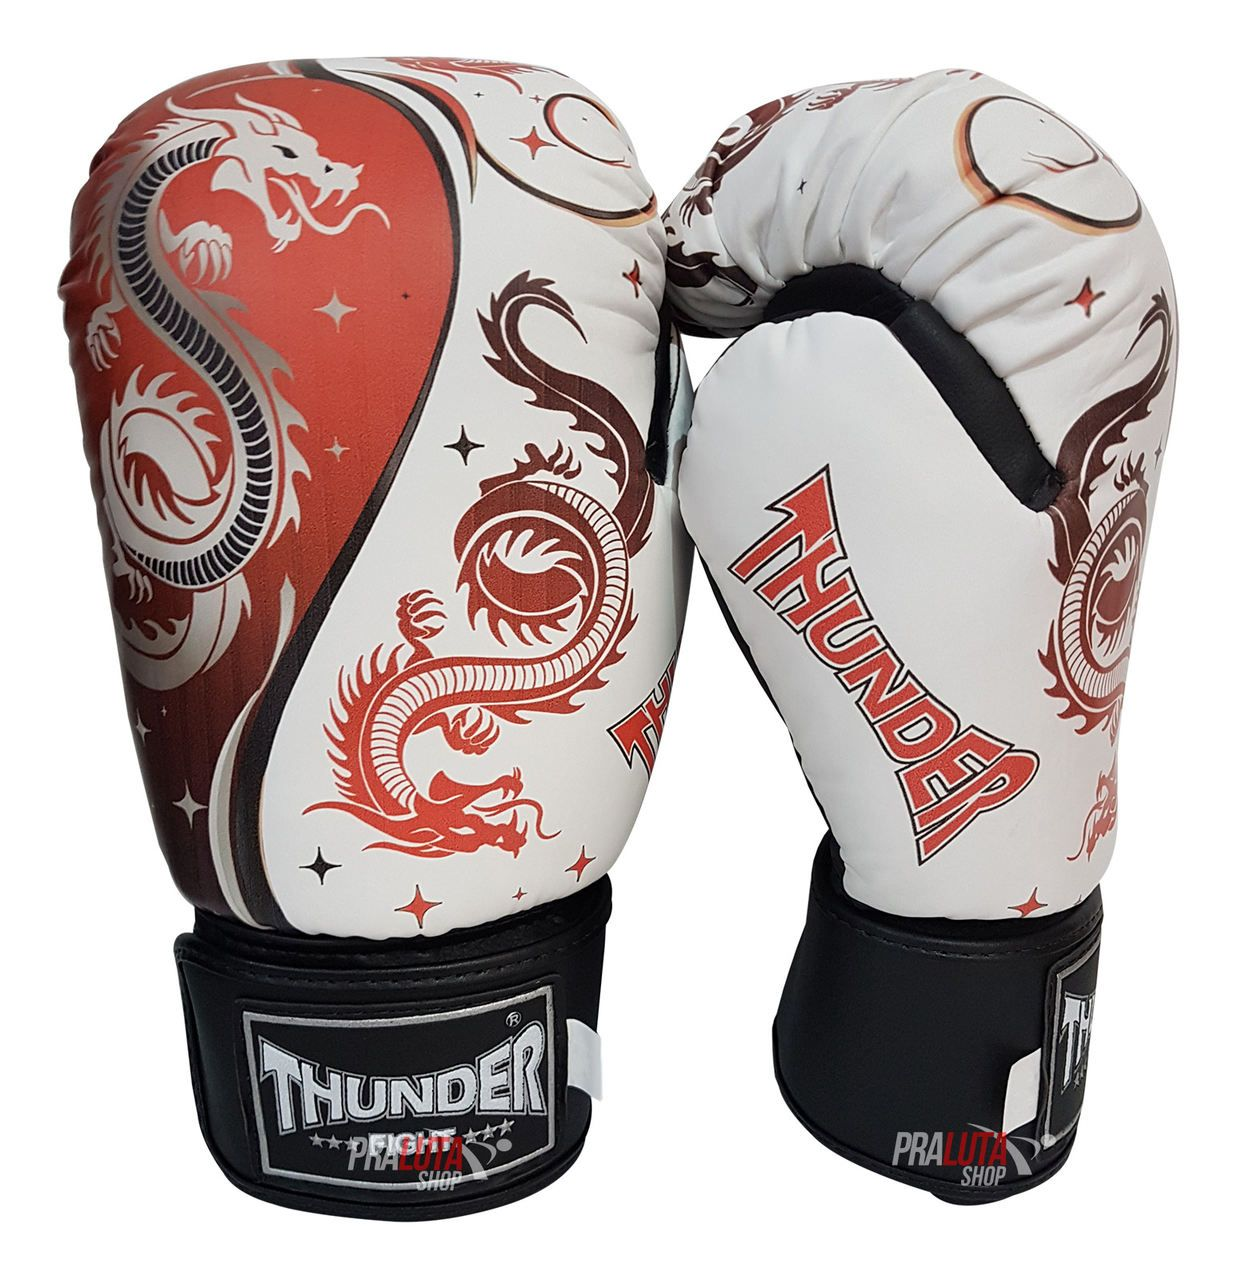 Kit de Boxe / Muay Thai 12oz - Dragão Vermelho - Thunder Fight   - PRALUTA SHOP